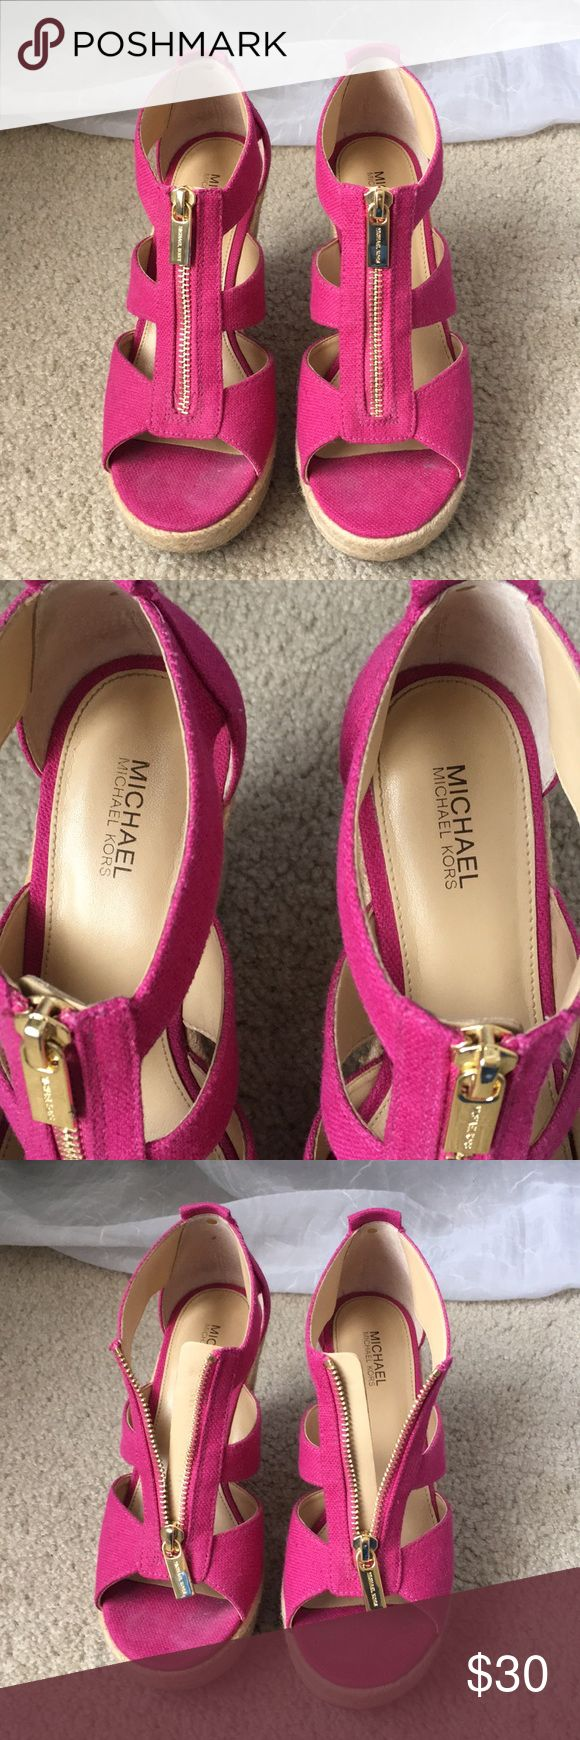 Best 25 Hot Pink Wedges Ideas On Pinterest Pink Wedges